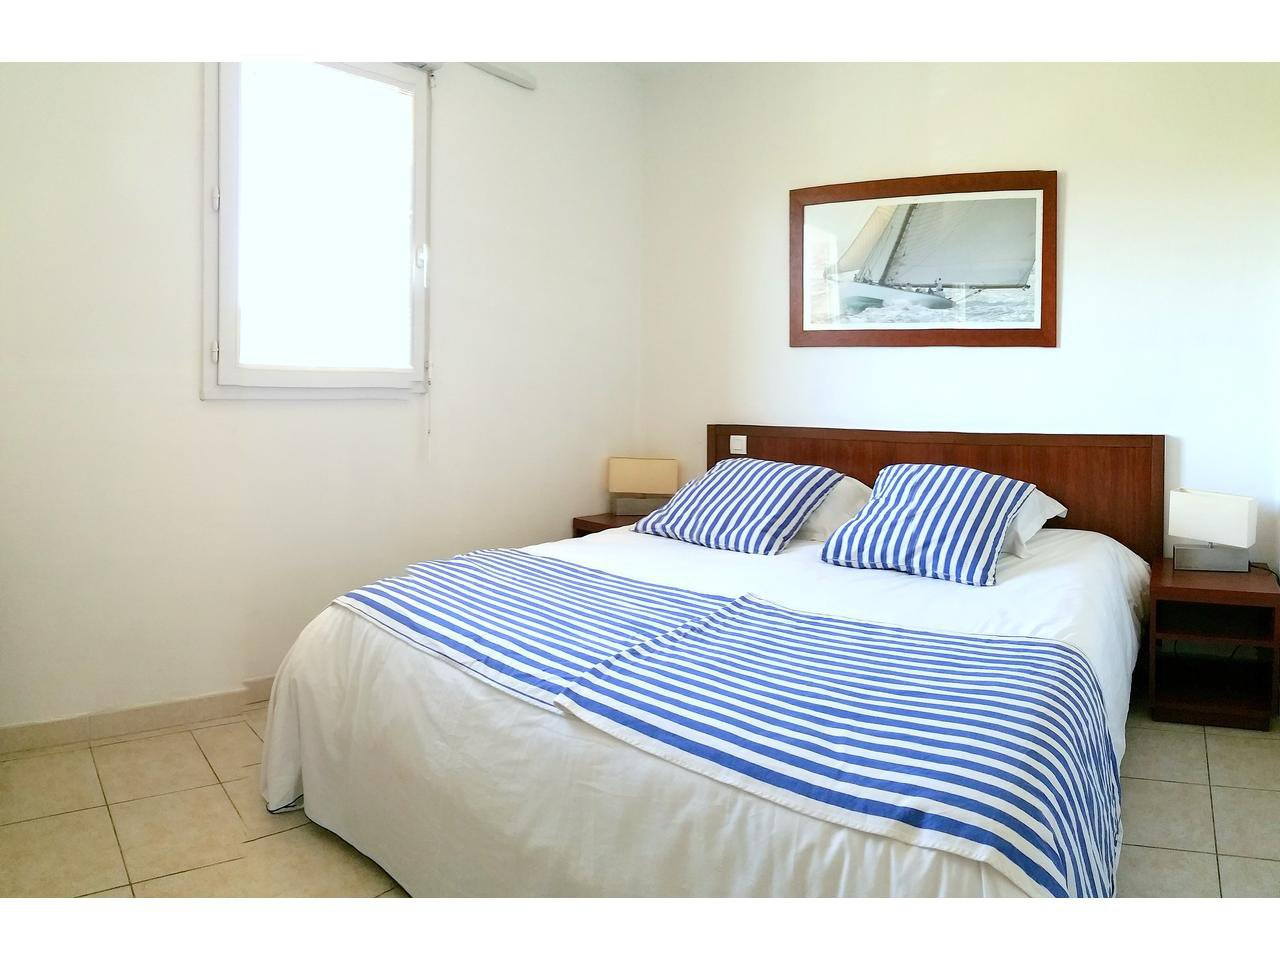 Apartment close to sea and golf course